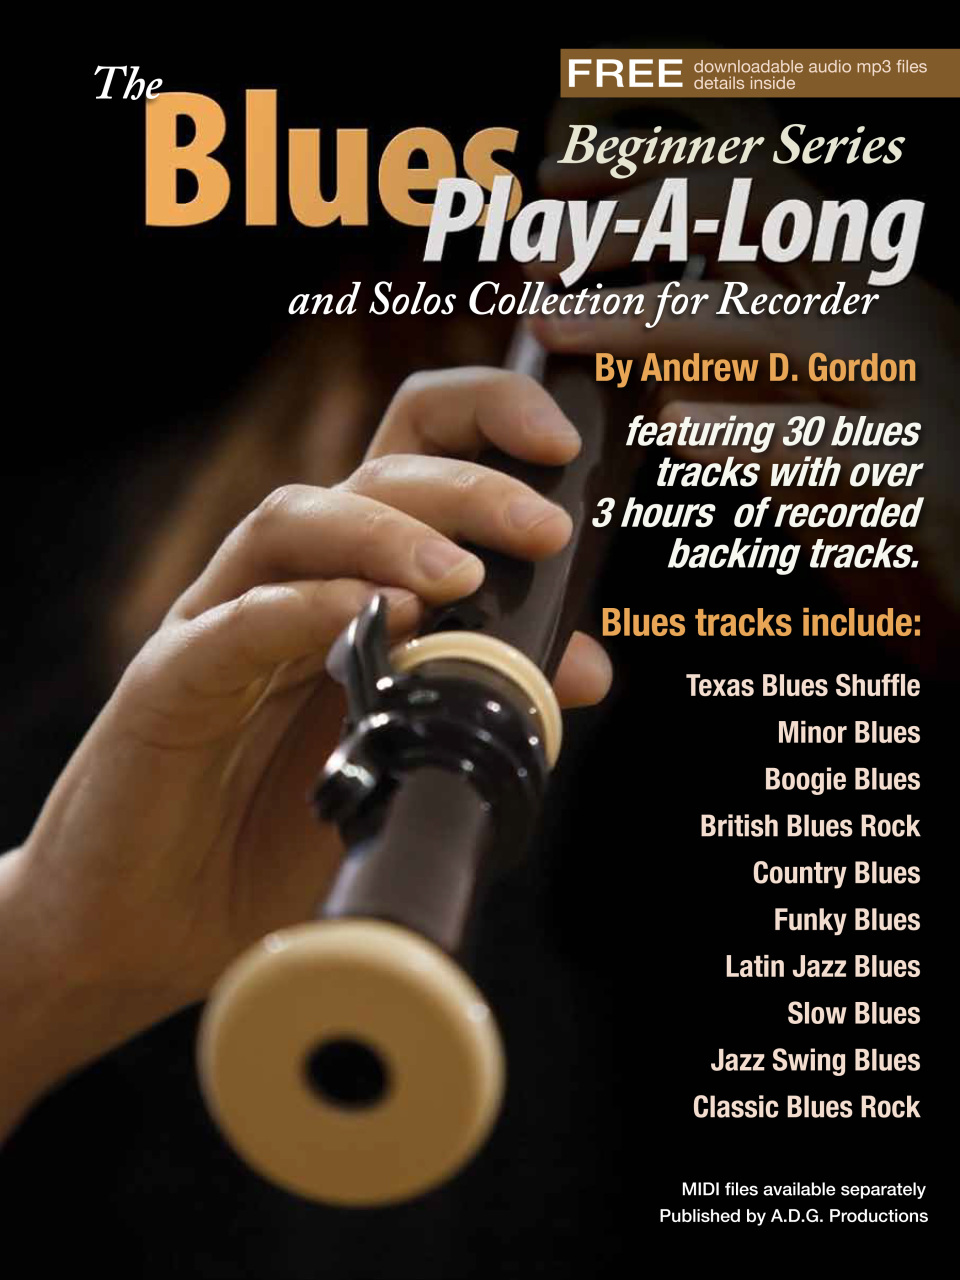 The Blues Play-A-Long and Solo Collection for Recorder